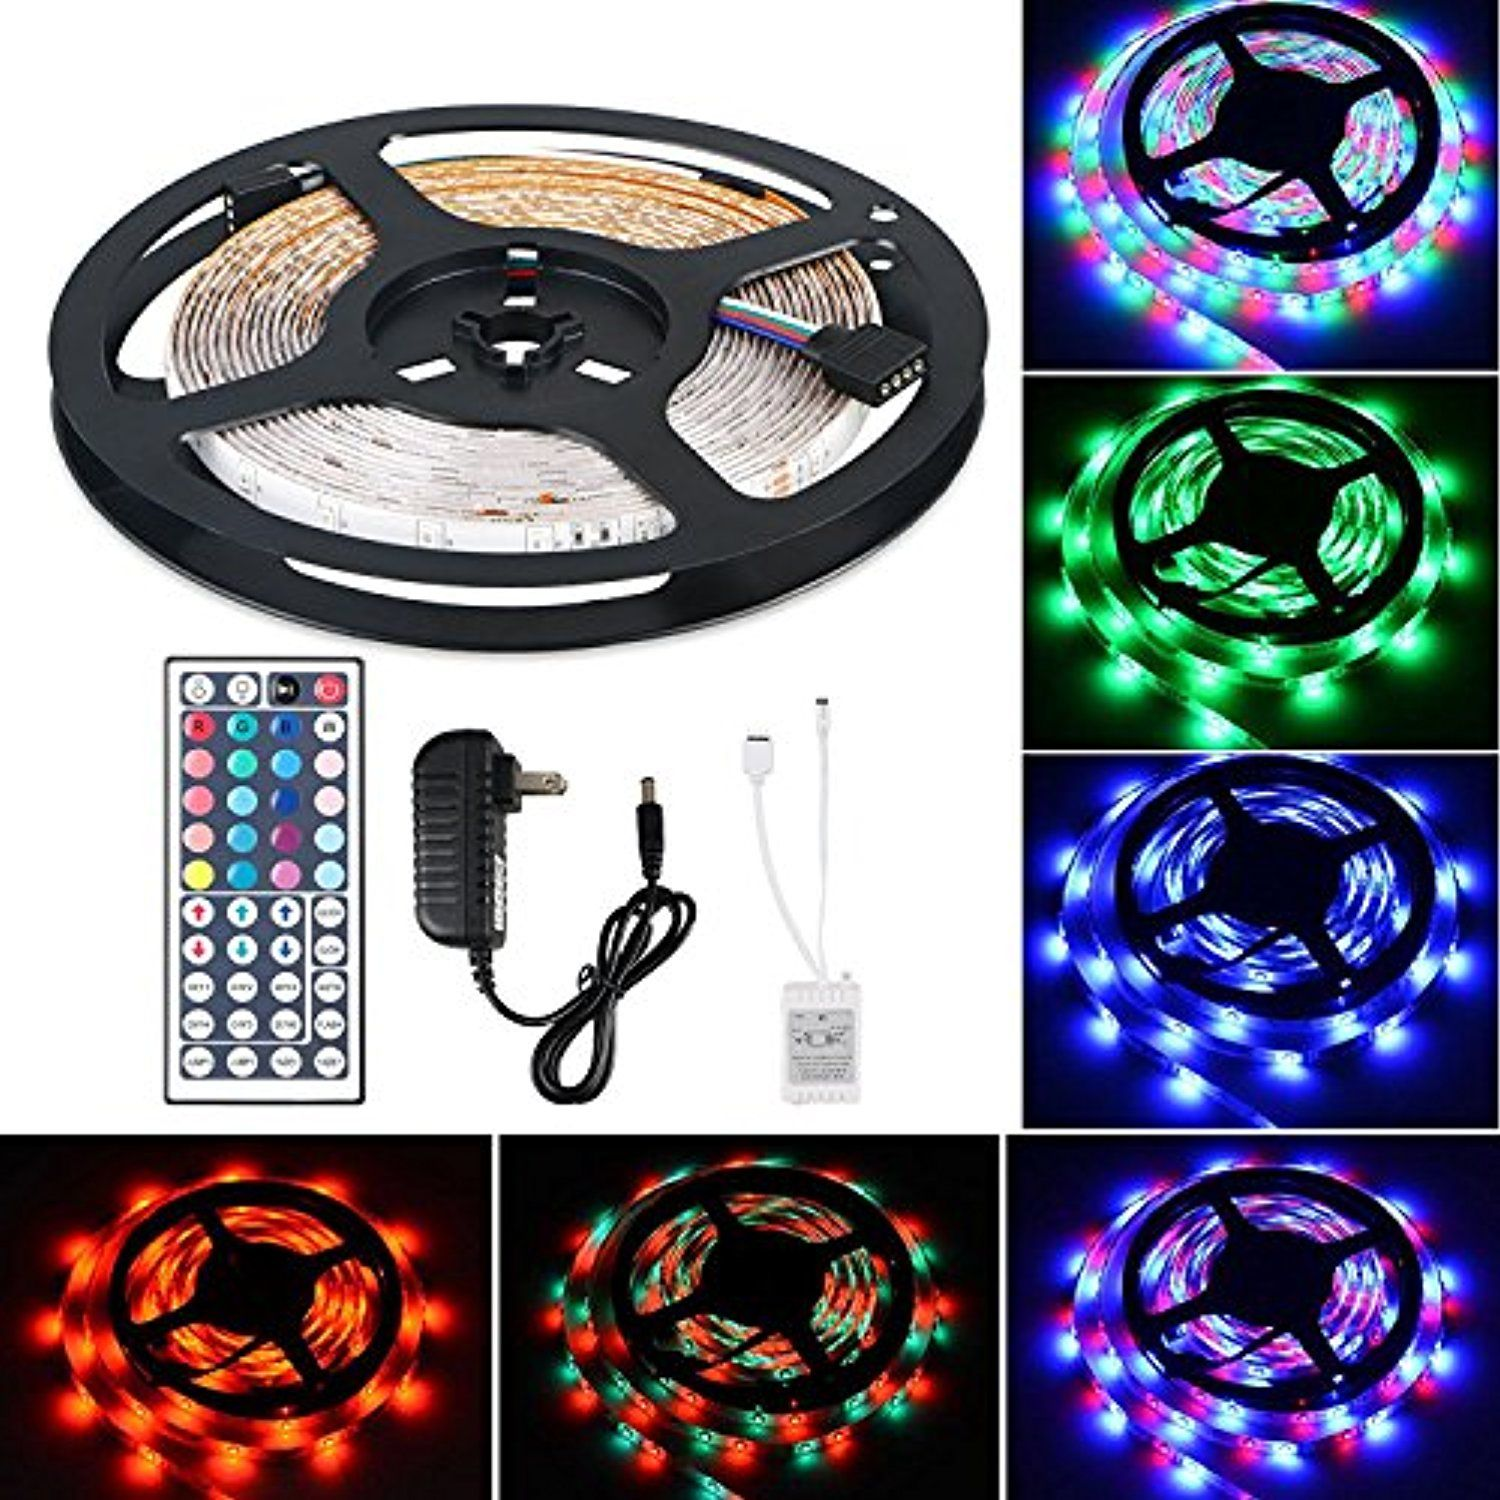 Flexible Led Strip Light Kit Linkstyle 16 4ft Led Rope Lights 300 Led Tape Light Color Changing R Led Rope Lights Flexible Led Strip Lights Led Strip Lighting